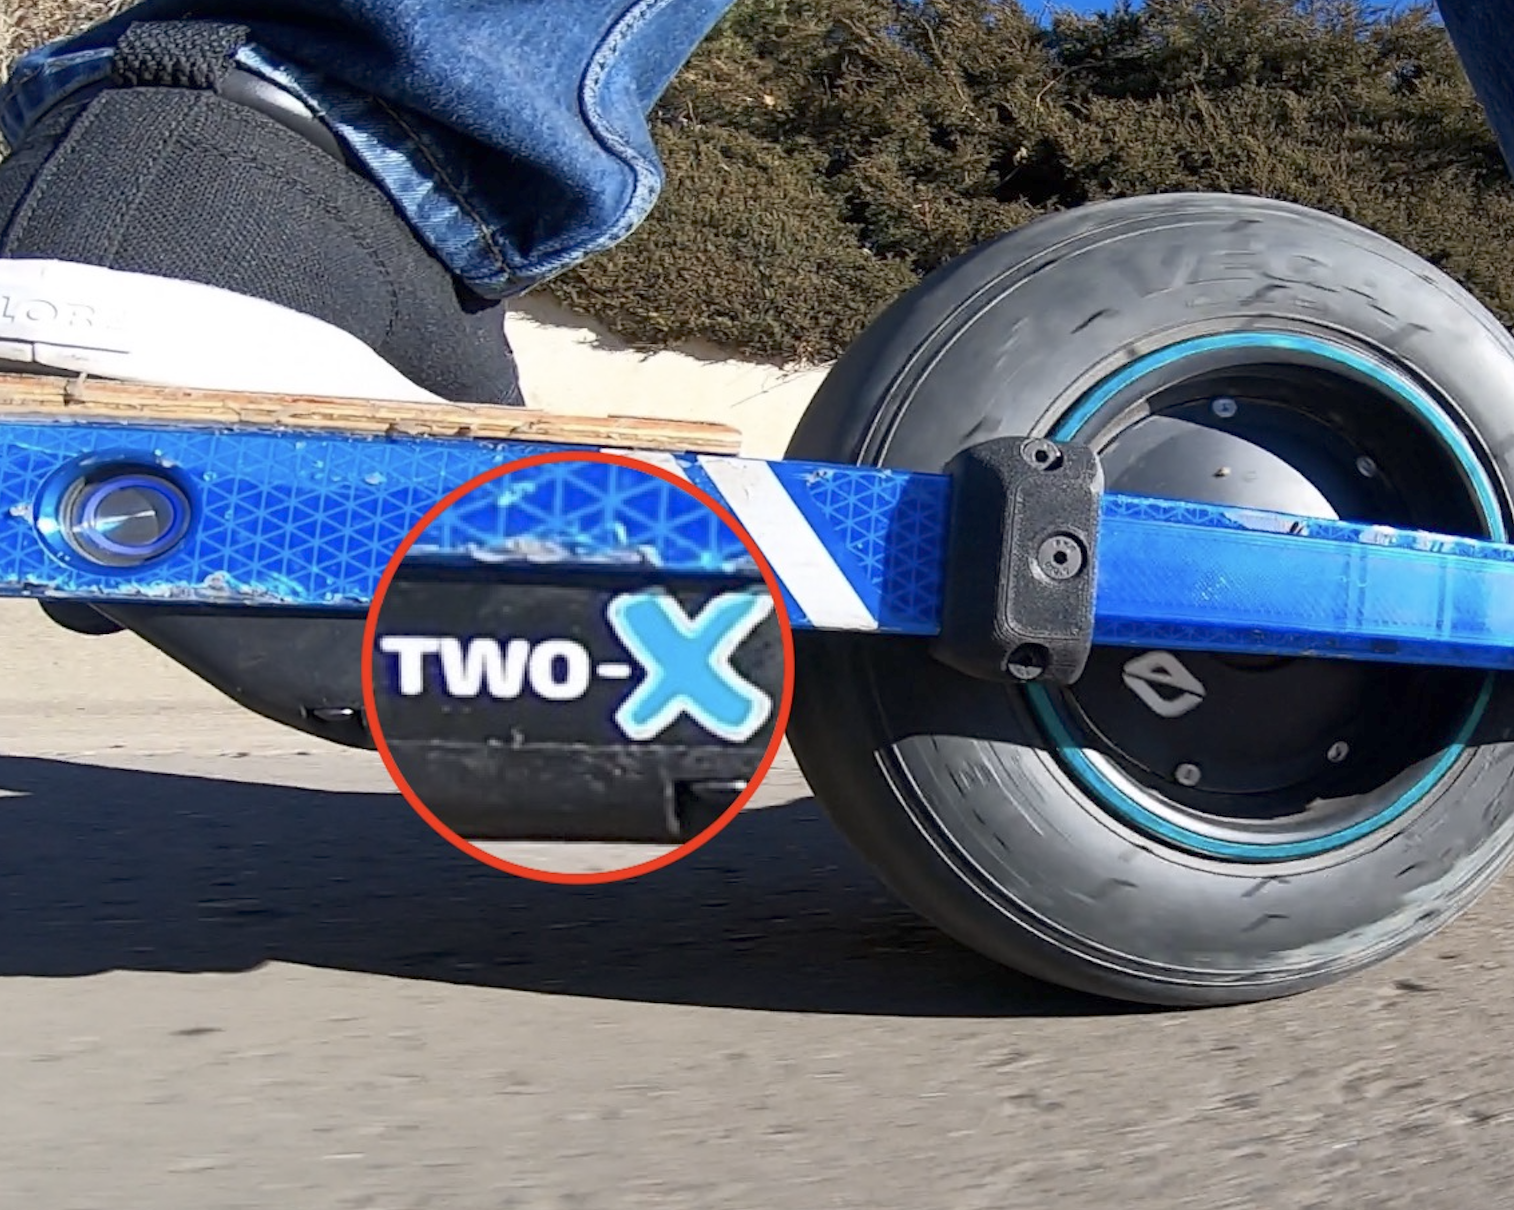 Two-X Review for the Onewheel – oneRADwheel